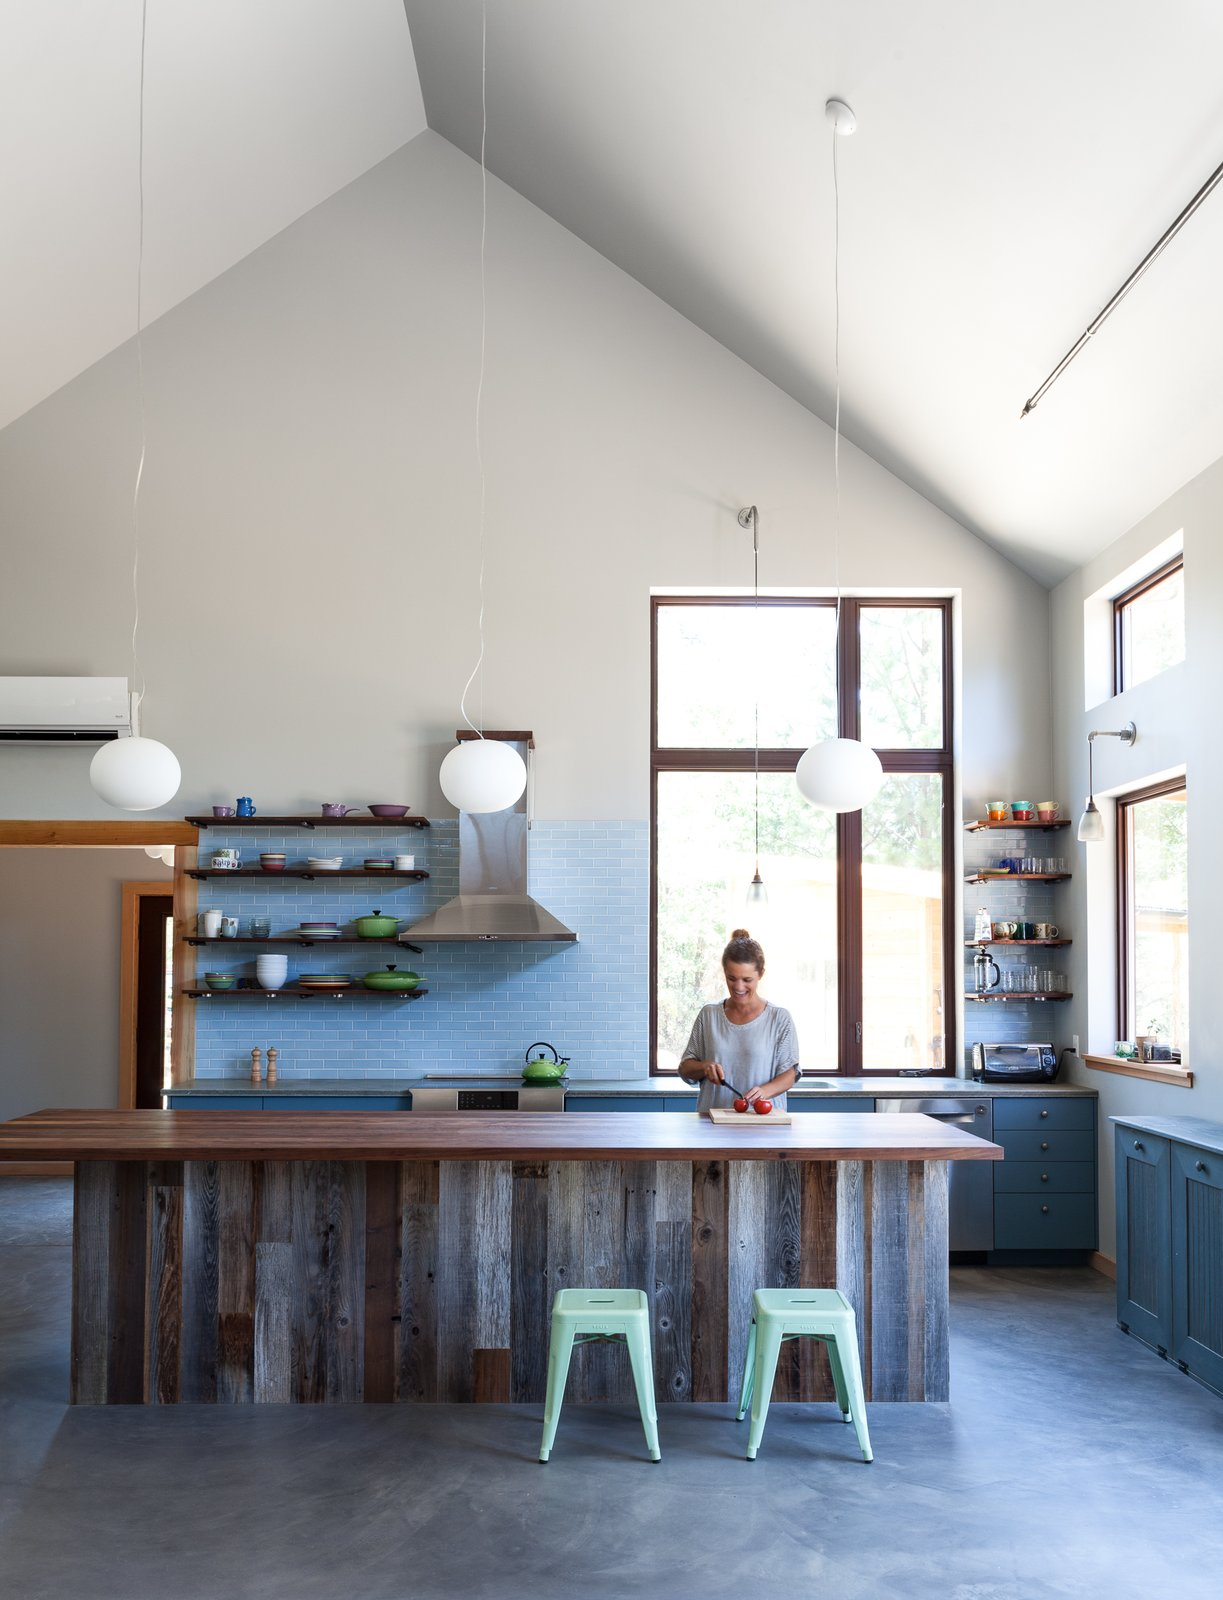 #open #kitchen #northern #california #highceilings #tile #wood #concrete  Photo by Kat Alves   Kitchen by Lara Deam from Kitchens